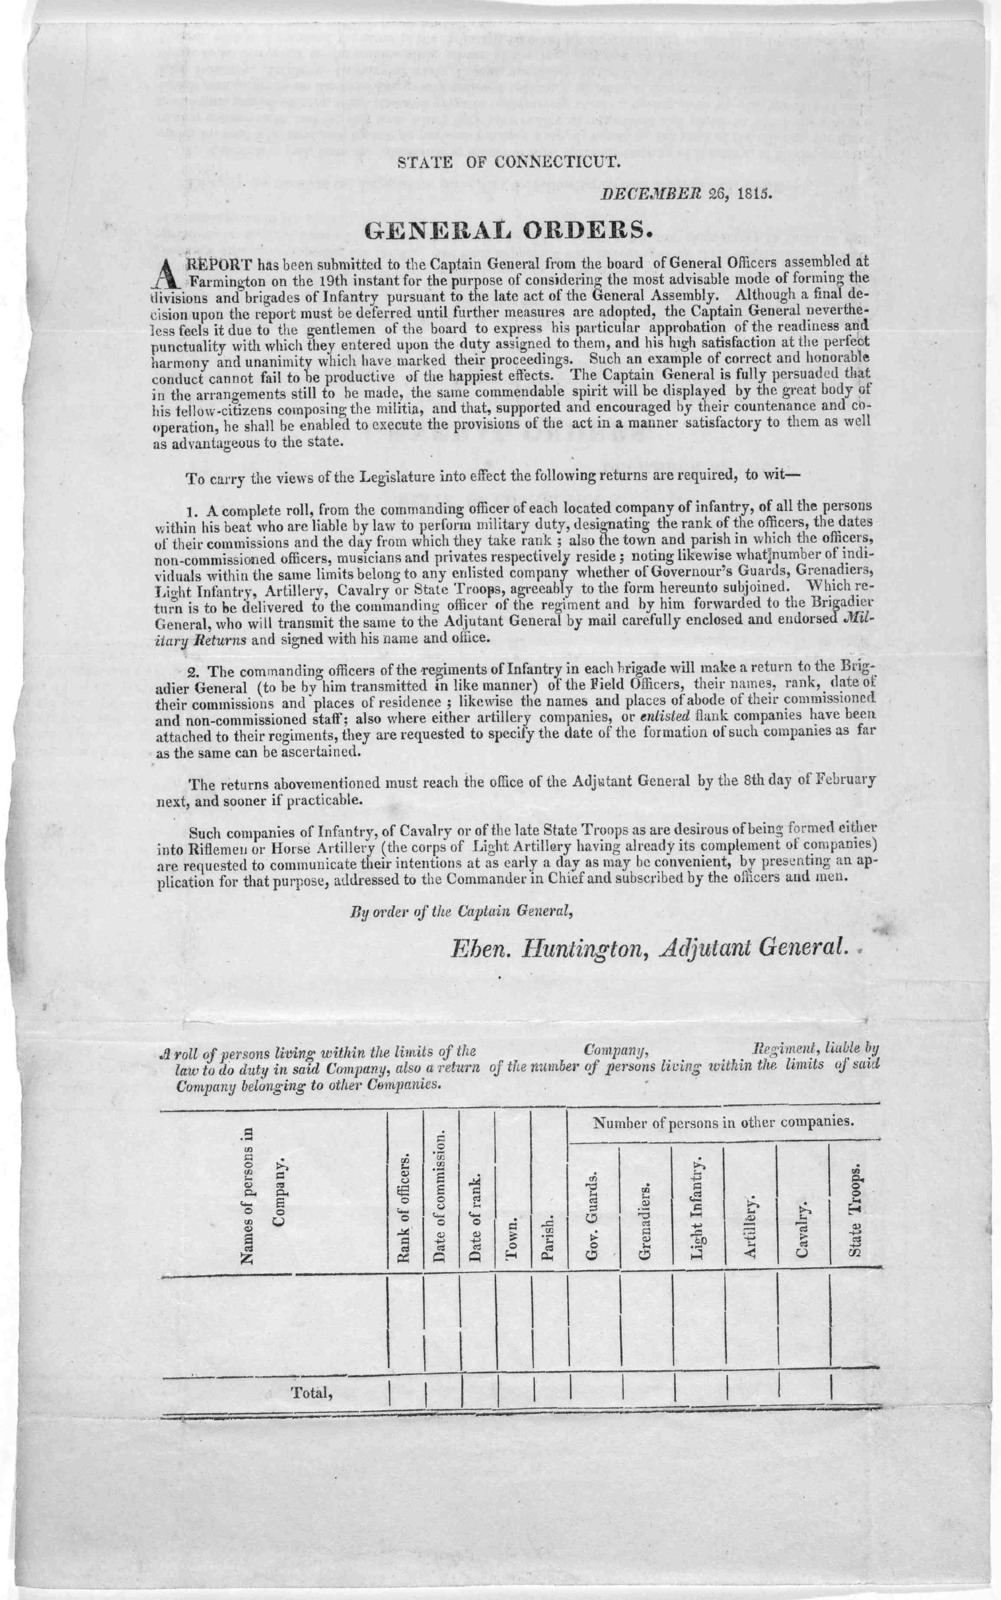 State of Connecticut. December 26, 1815. General Orders [regarding the most advisable mode of forming the divisions and brigades of infantry] ... By order of the Captain General Eben Huntington, Adjutant General.